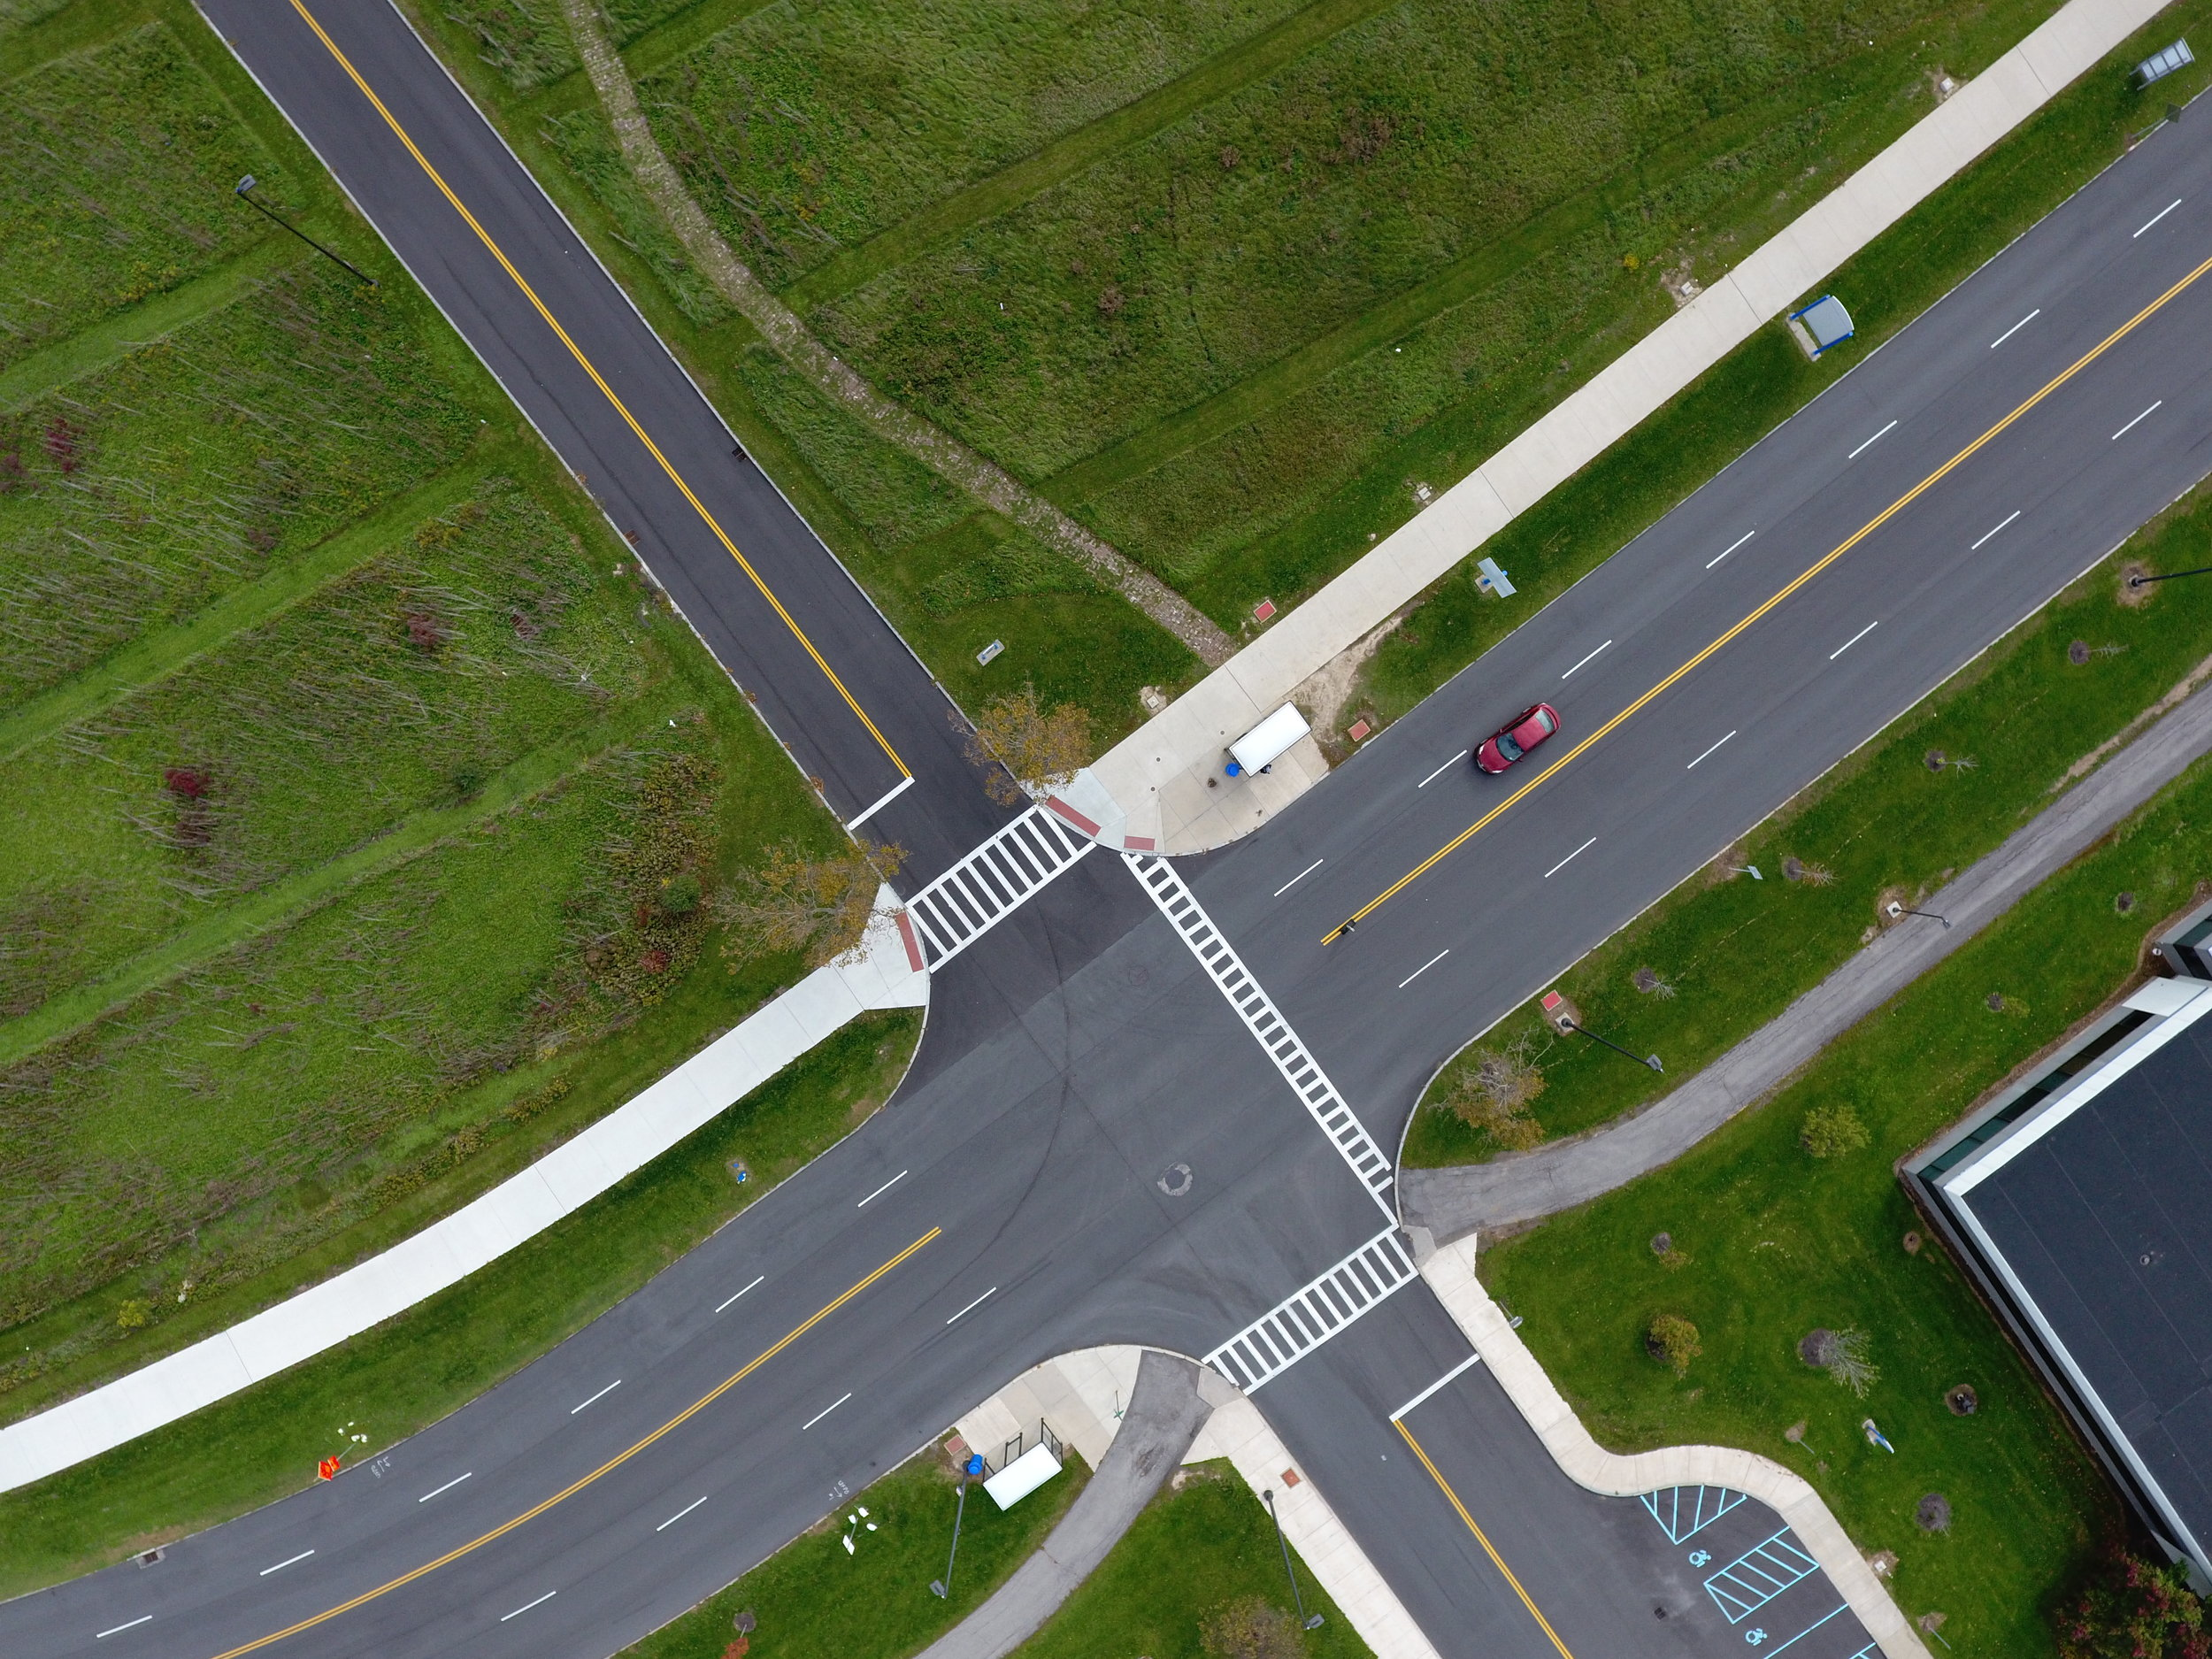 EagleHawk captures imagery to re create a geographically accurate representation of the intersection to aid in traffic and accident investigations. 2D & 3D representations allow for detailed examination and accurate measuring.